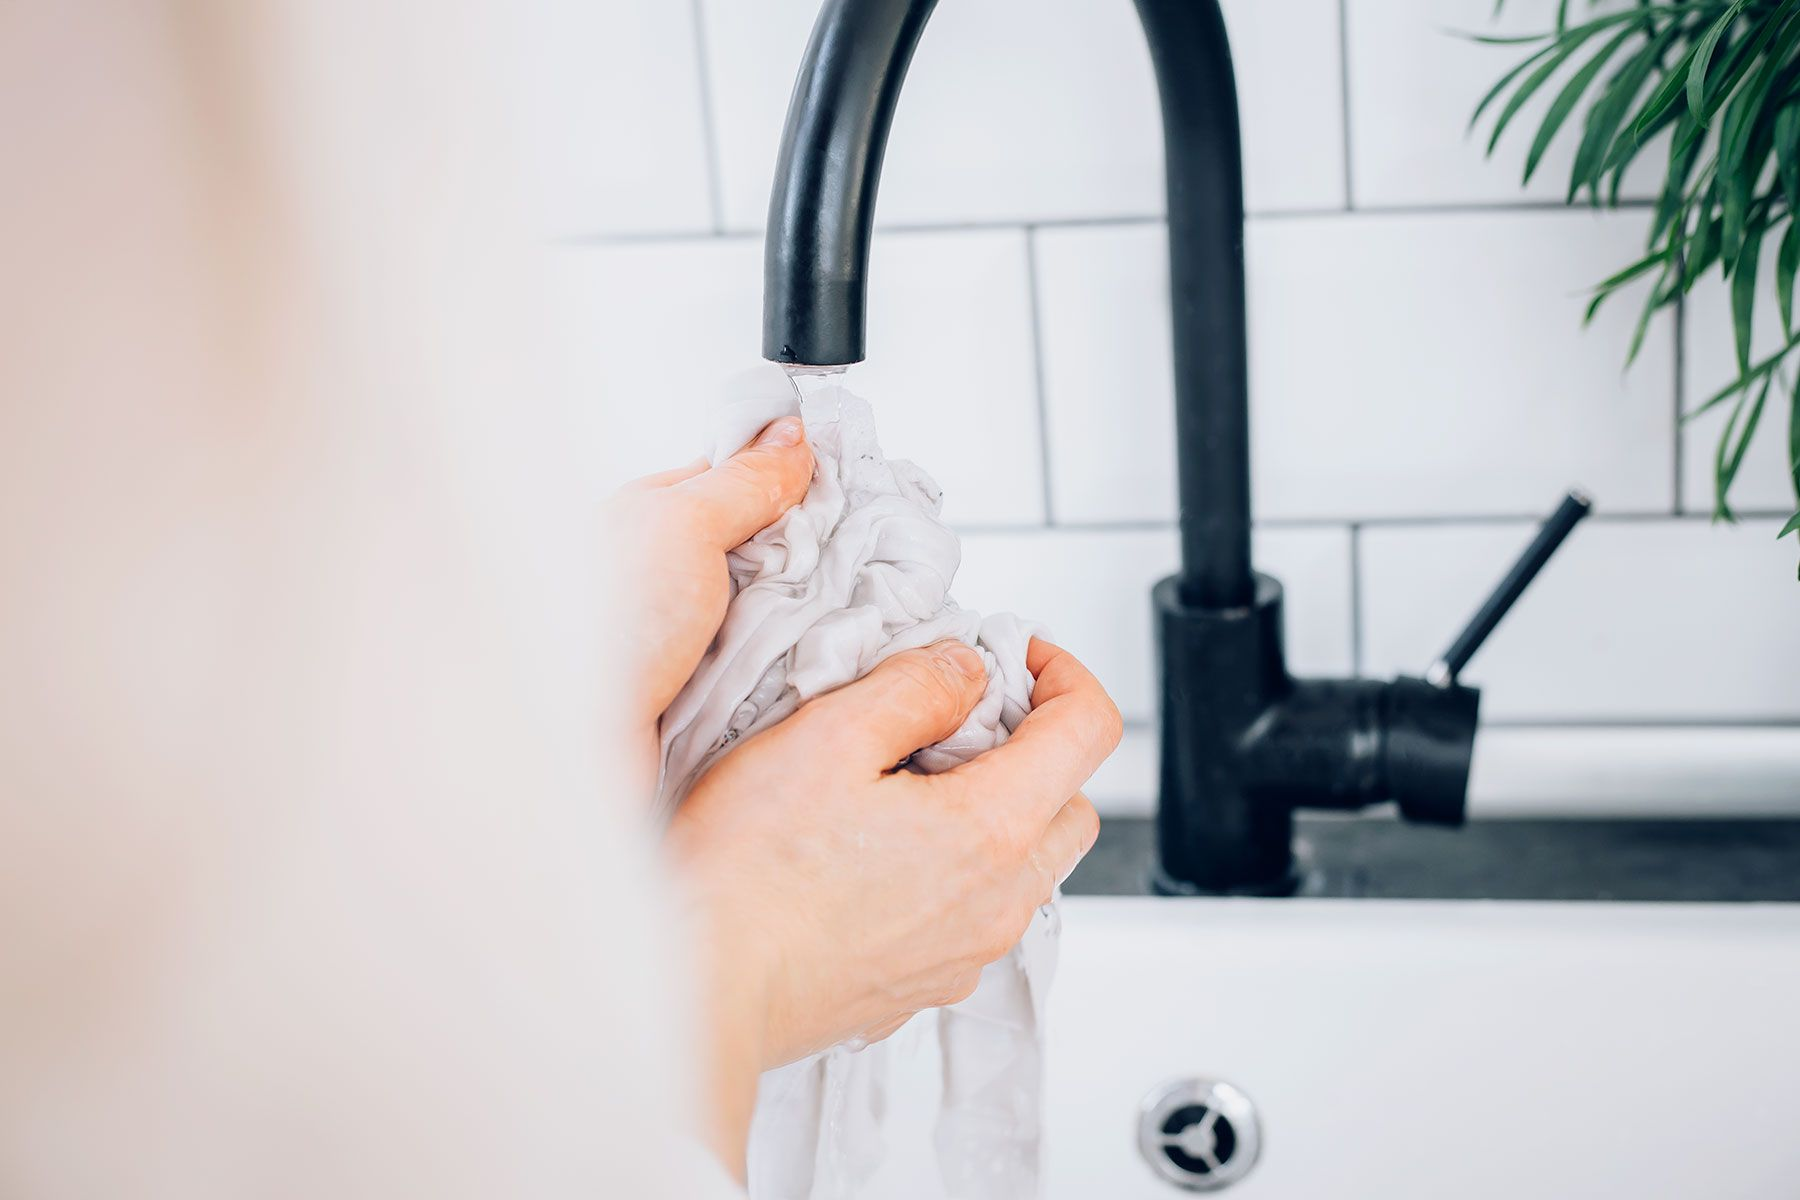 Rinse stain solution under water